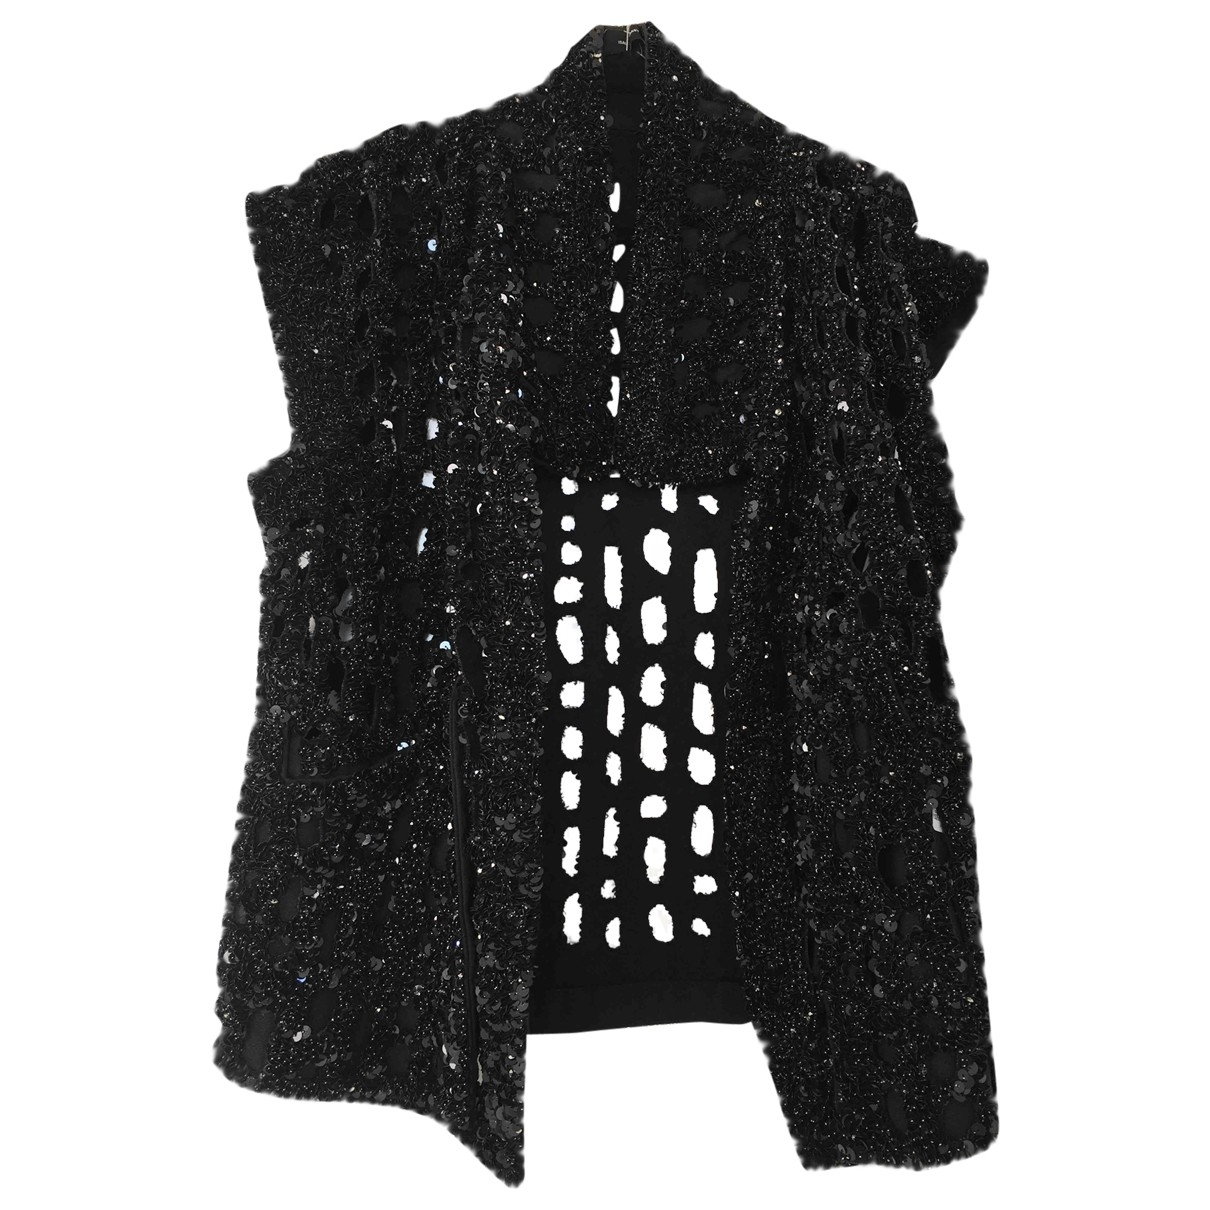 Isabel Marant \N Black Glitter jacket for Women 36 FR